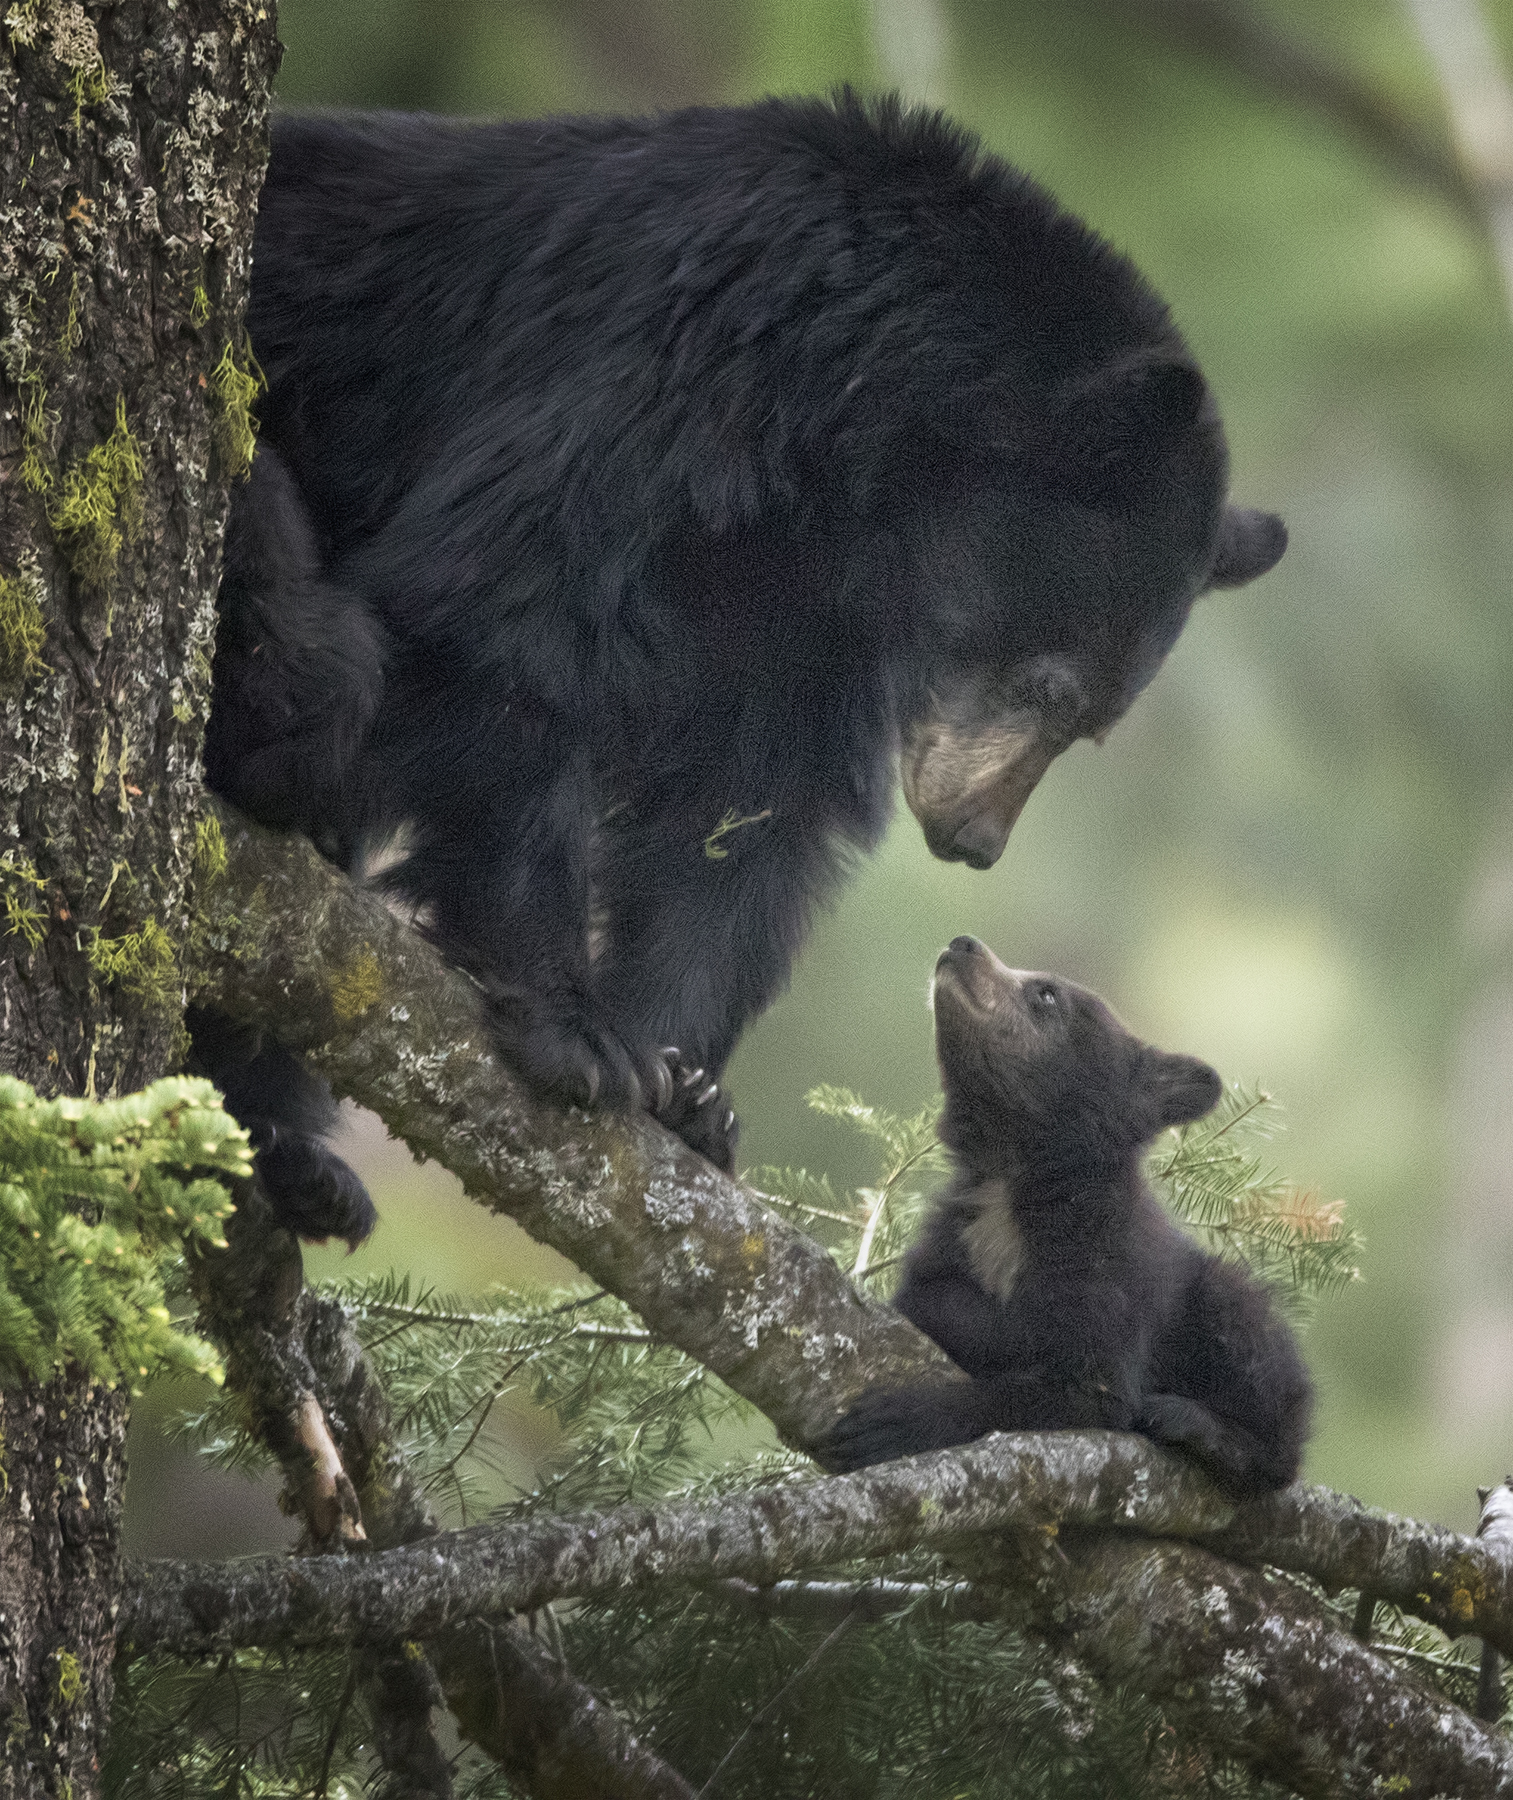 Mother Blackbear and Cub